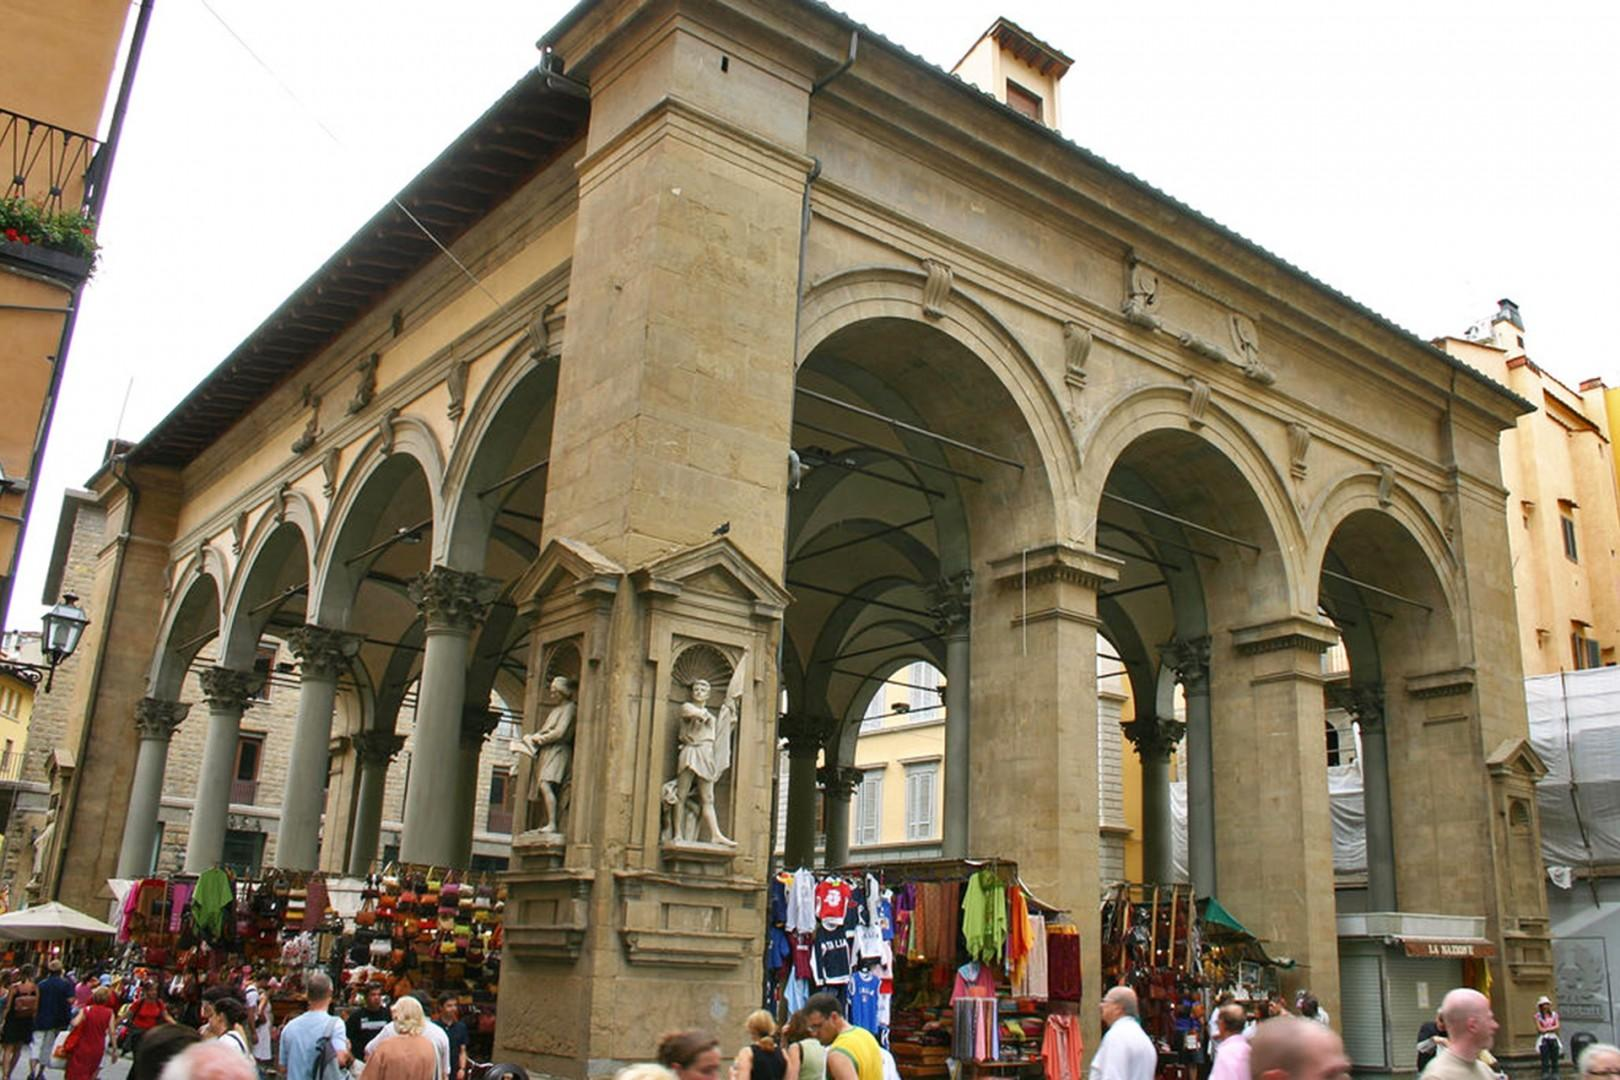 Shopping in this famous market, called Nuovo (new) from @1700s should end when you rub the snout of the bronzewild boar statue for luck.